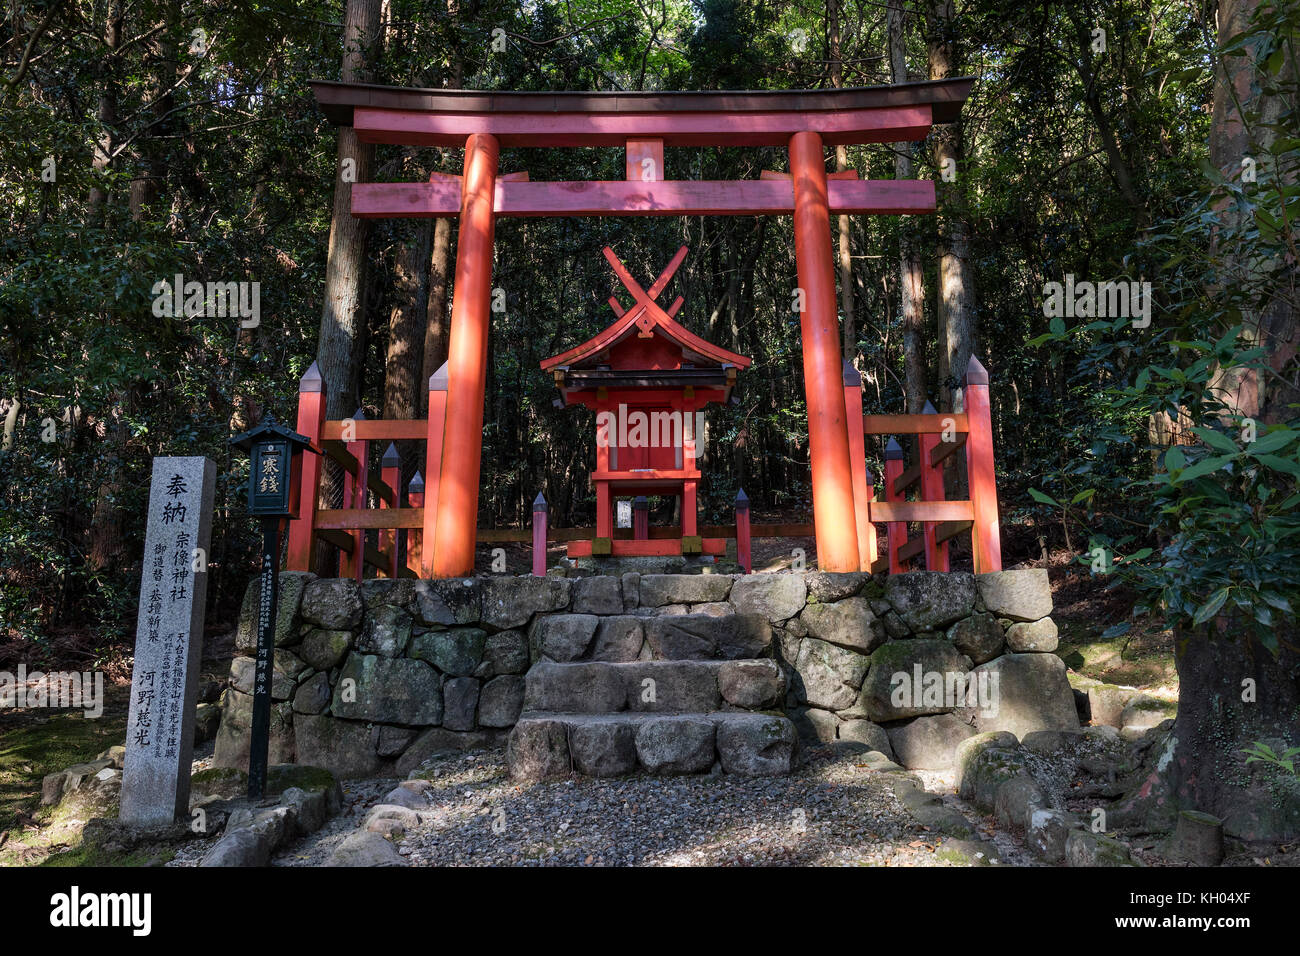 Nara - Japan, May 29, 2017: Torii gate and shinto shrine in the the Kasugayama Primeval Forest, registered as a - Stock Image